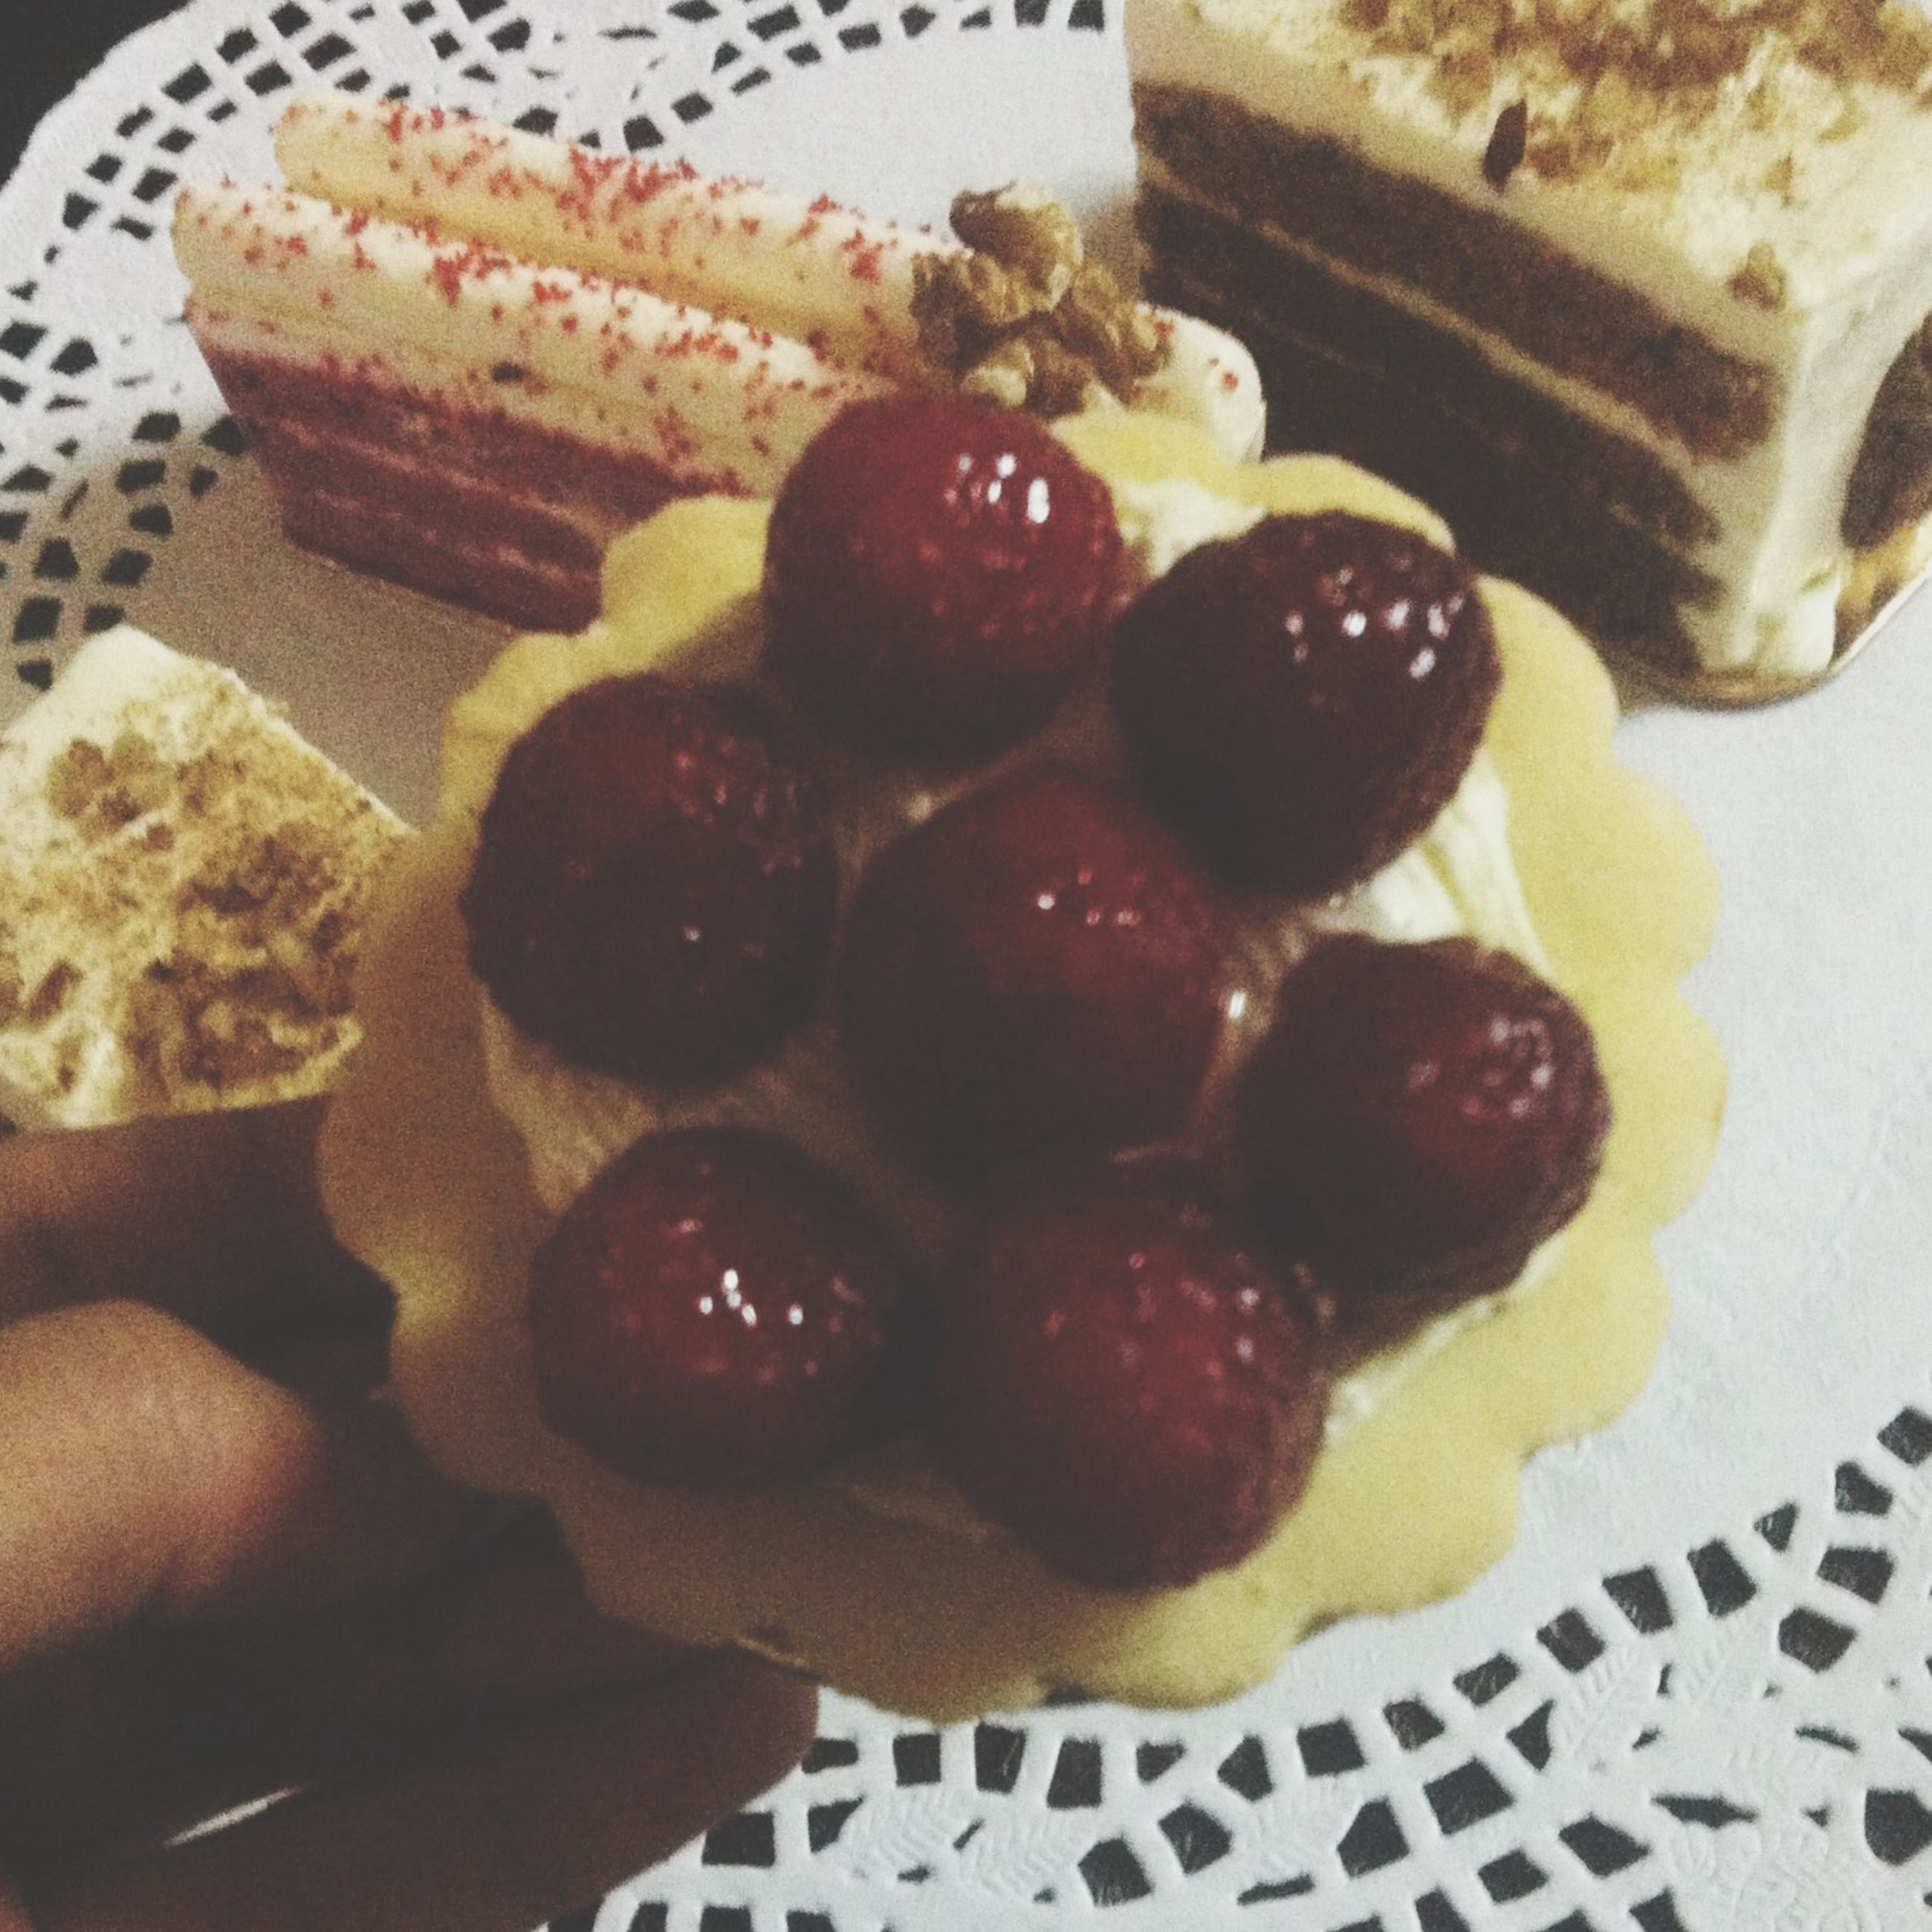 food and drink, food, indoors, freshness, sweet food, fruit, ready-to-eat, dessert, still life, strawberry, indulgence, plate, unhealthy eating, table, close-up, high angle view, temptation, cake, chocolate